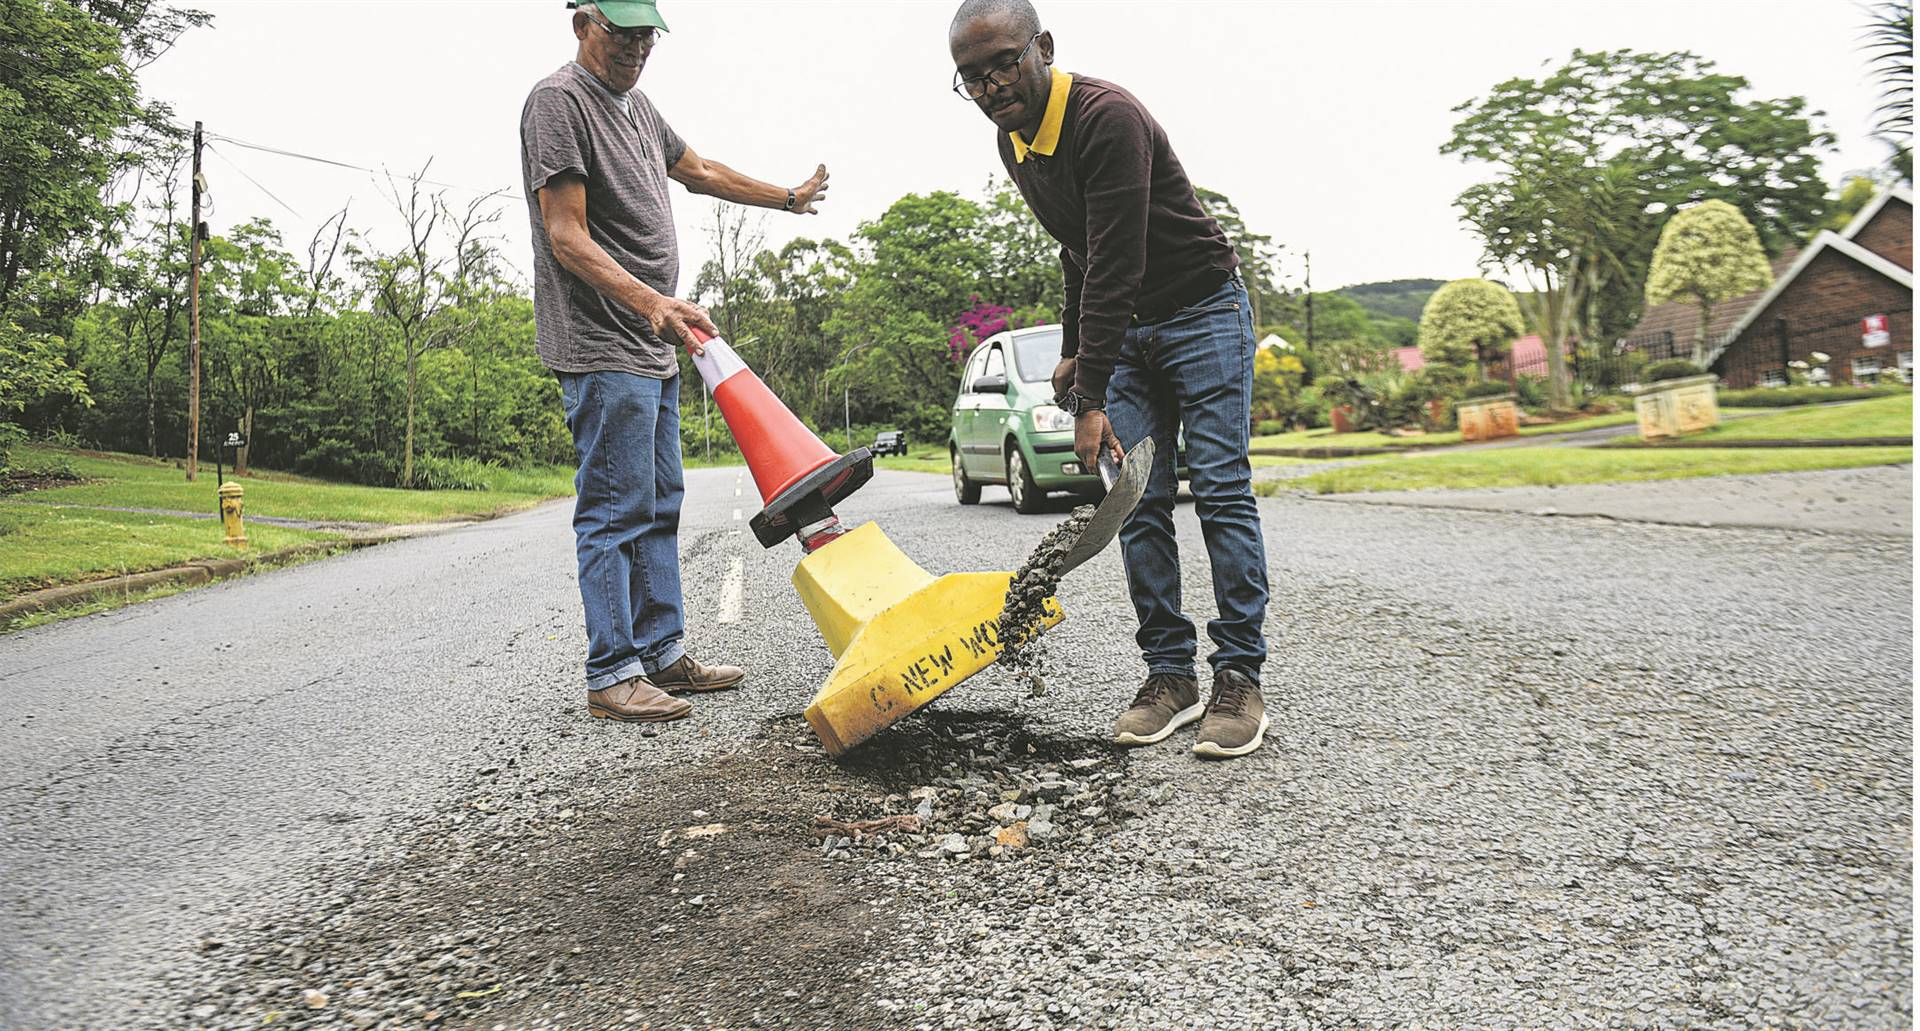 Potholes are a metaphor for the systemic rot in South Africa, says the writer. (Moeketsi Mamane, file)